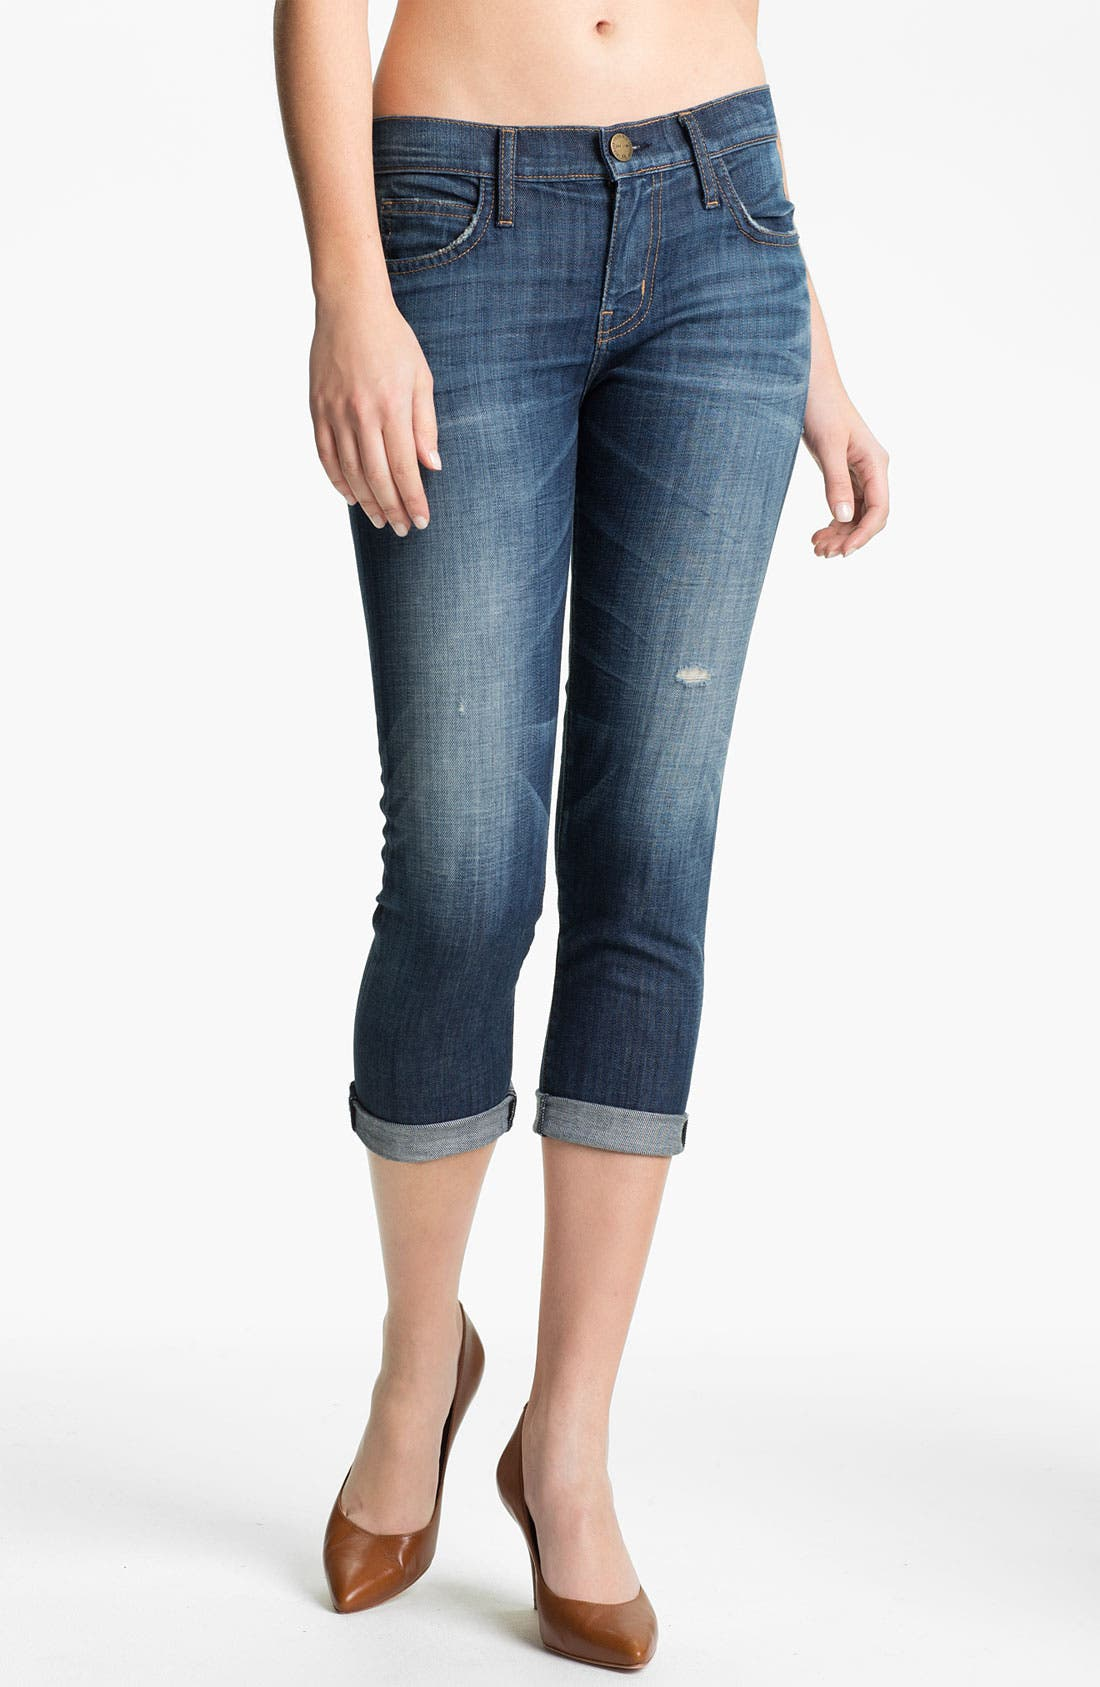 Main Image - Current/Elliott 'The Roller' Crop Stretch Jeans (Wildcard with Destroy)